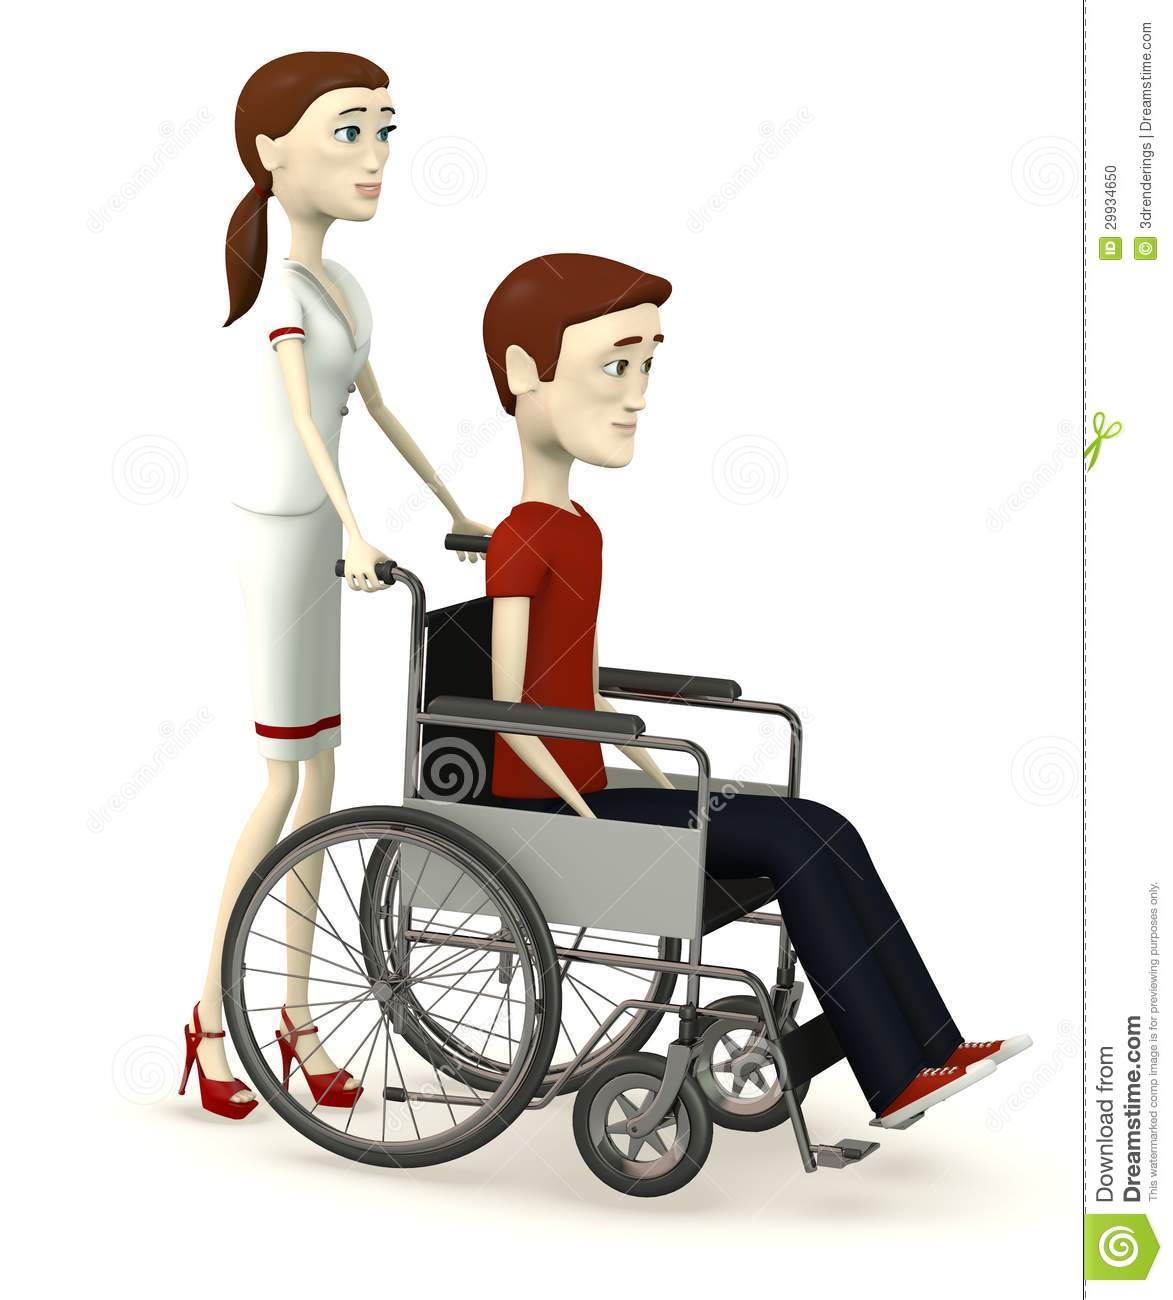 Businessman On Wheelchair With Nurse Stock Photo - Image: 29934650